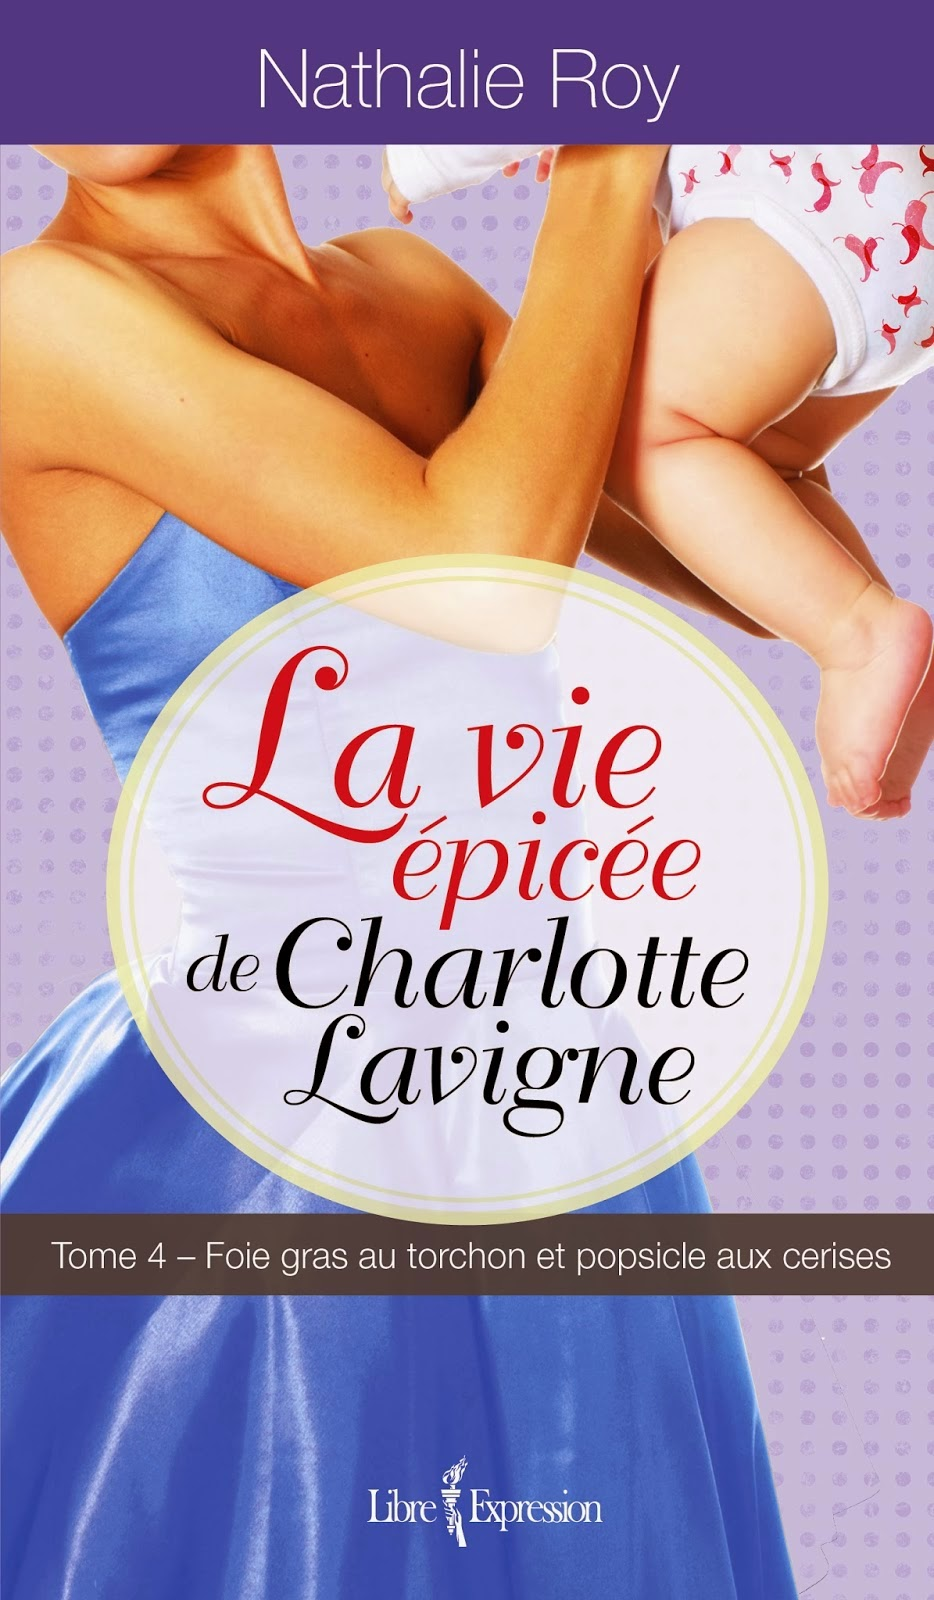 http://www.editions-libreexpression.com/vie-epicee-charlotte-lavigne-tome-4/nathalie-roy/livre/9782764808801